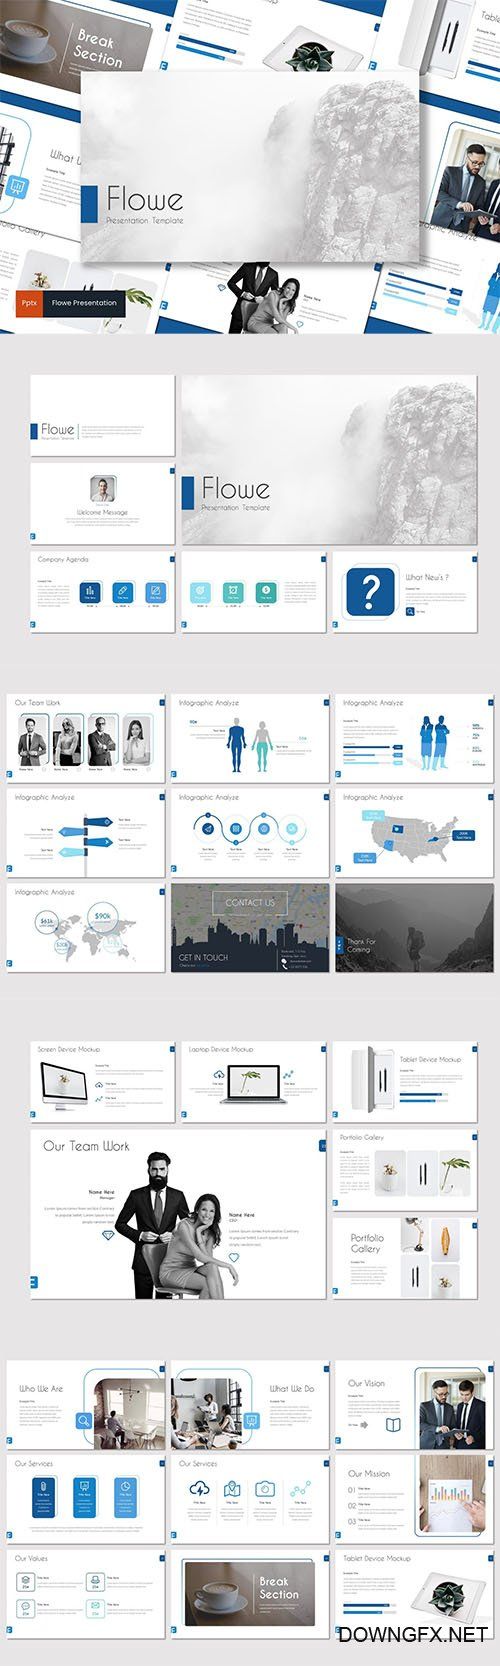 Flowe - Powerpoint, Keynote and Google Slides Templates